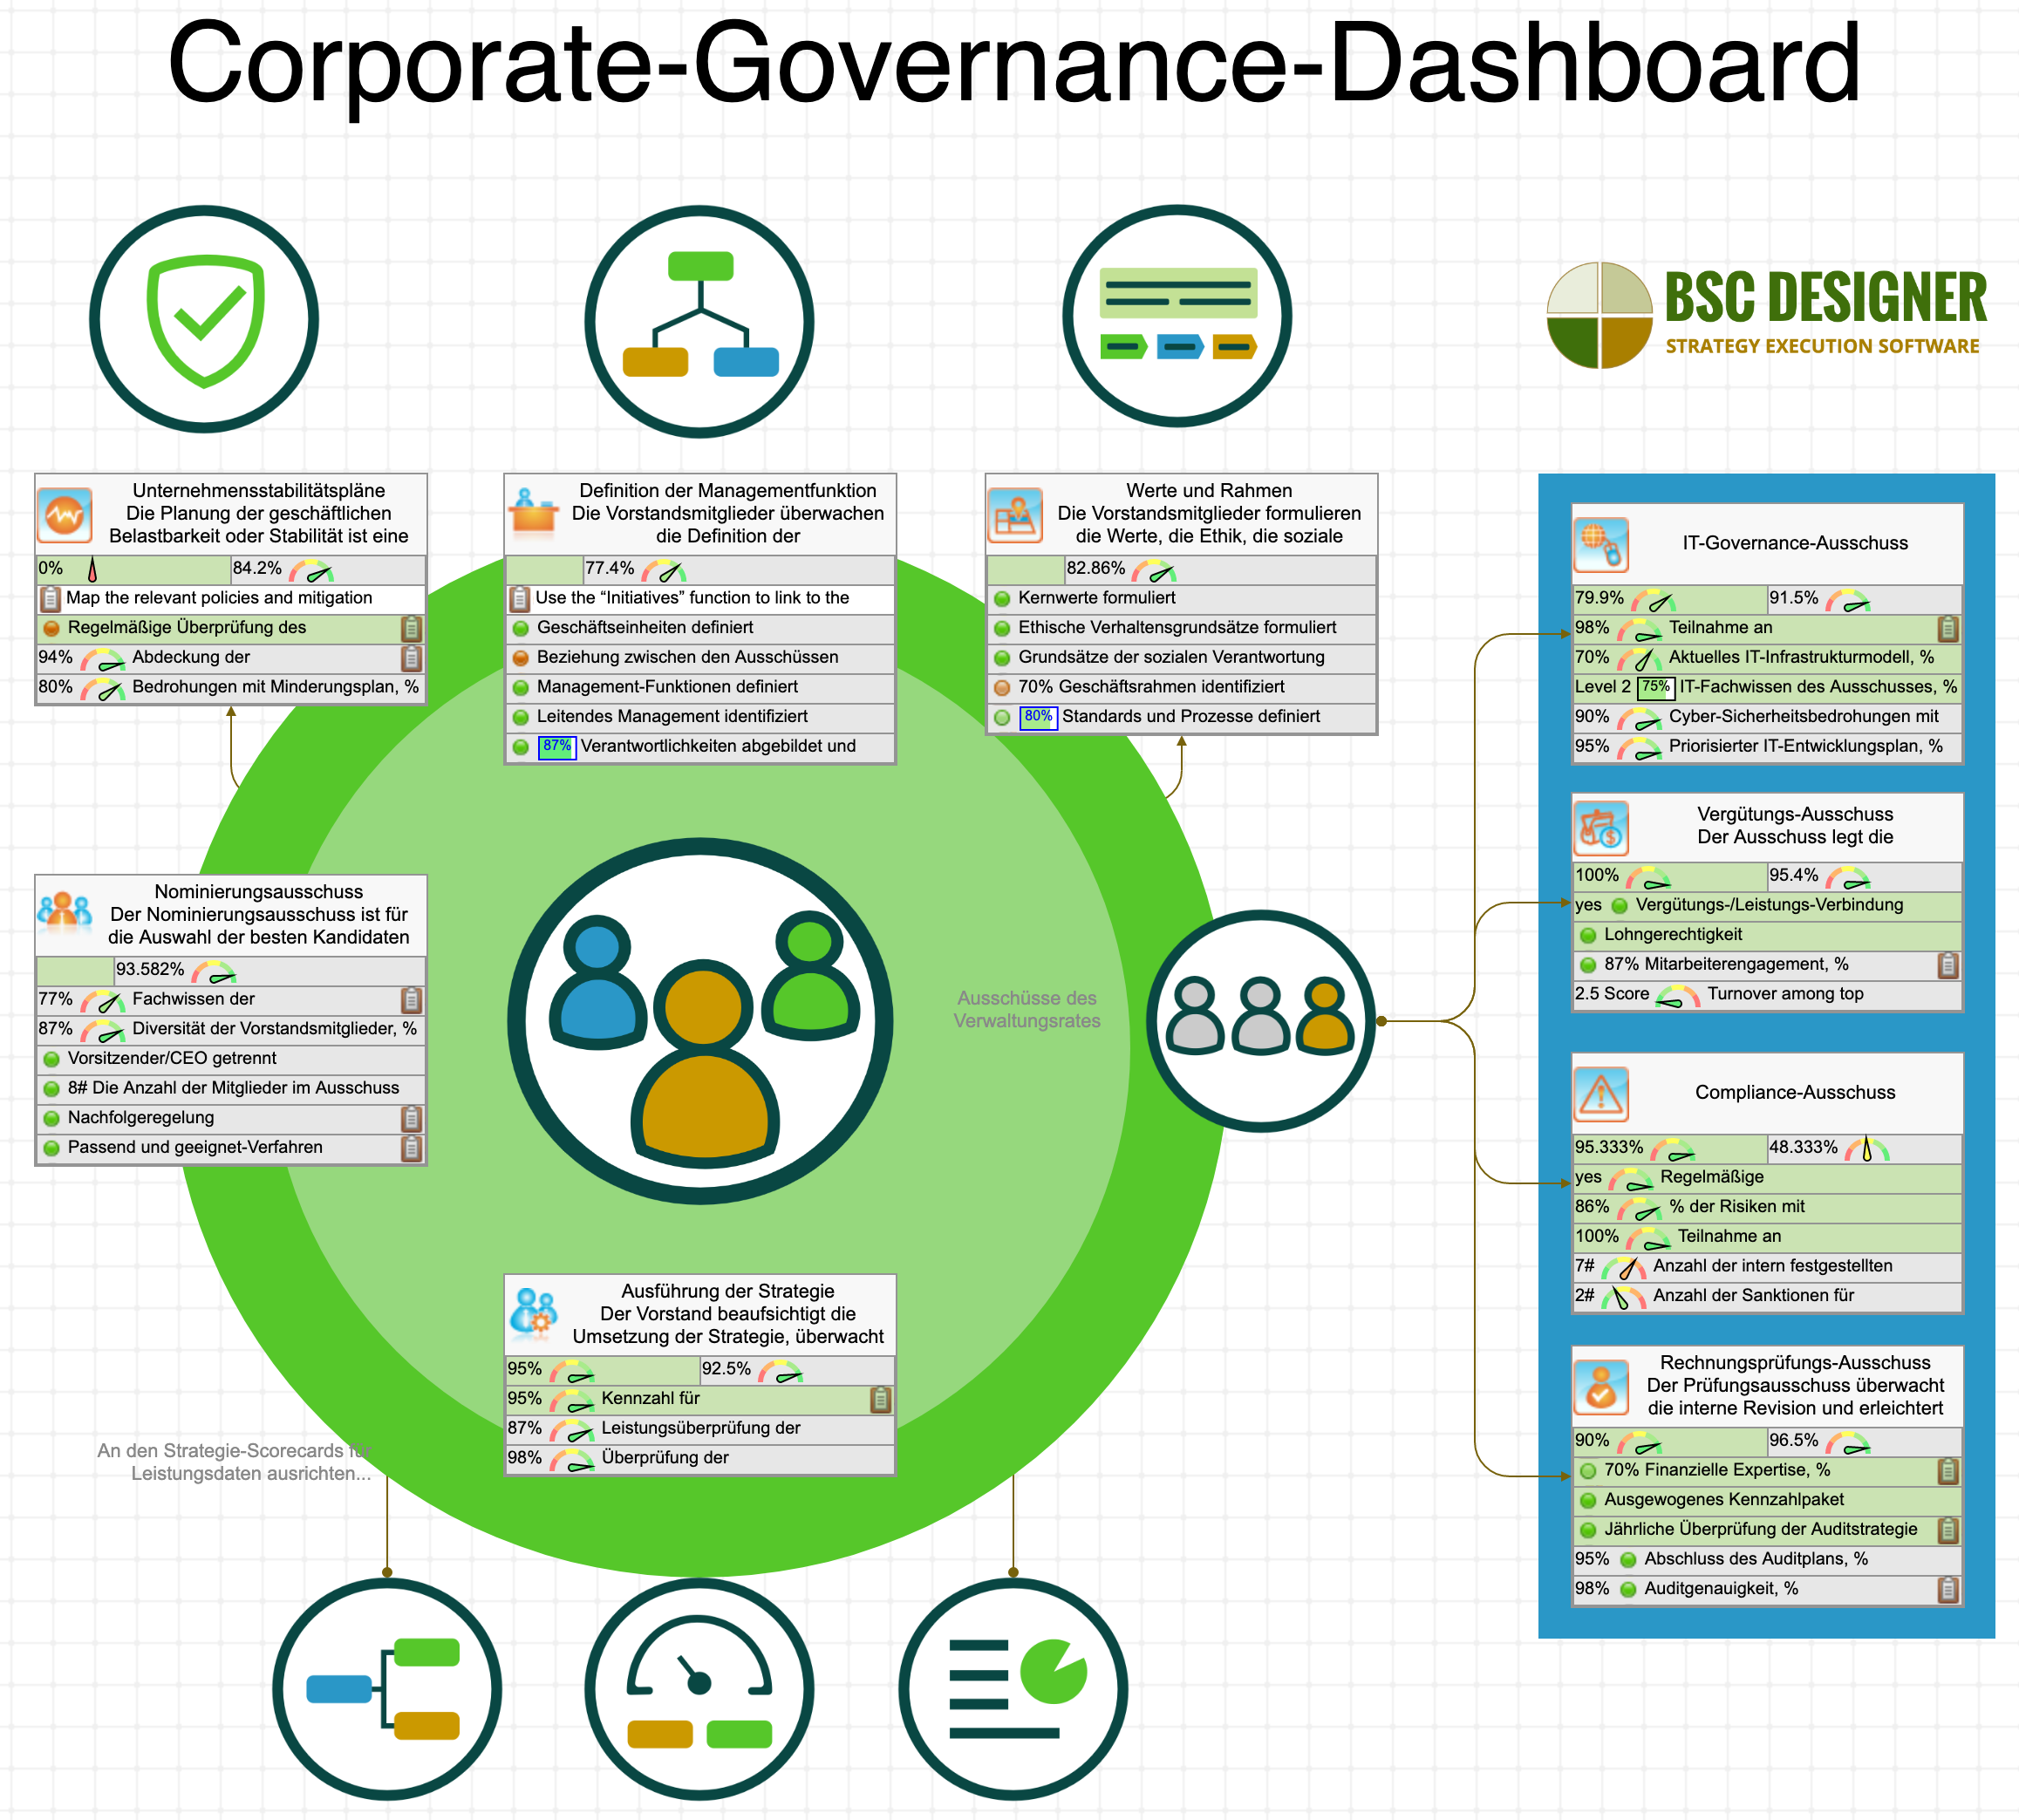 Corporate Governance-Dashboard mit KPIs